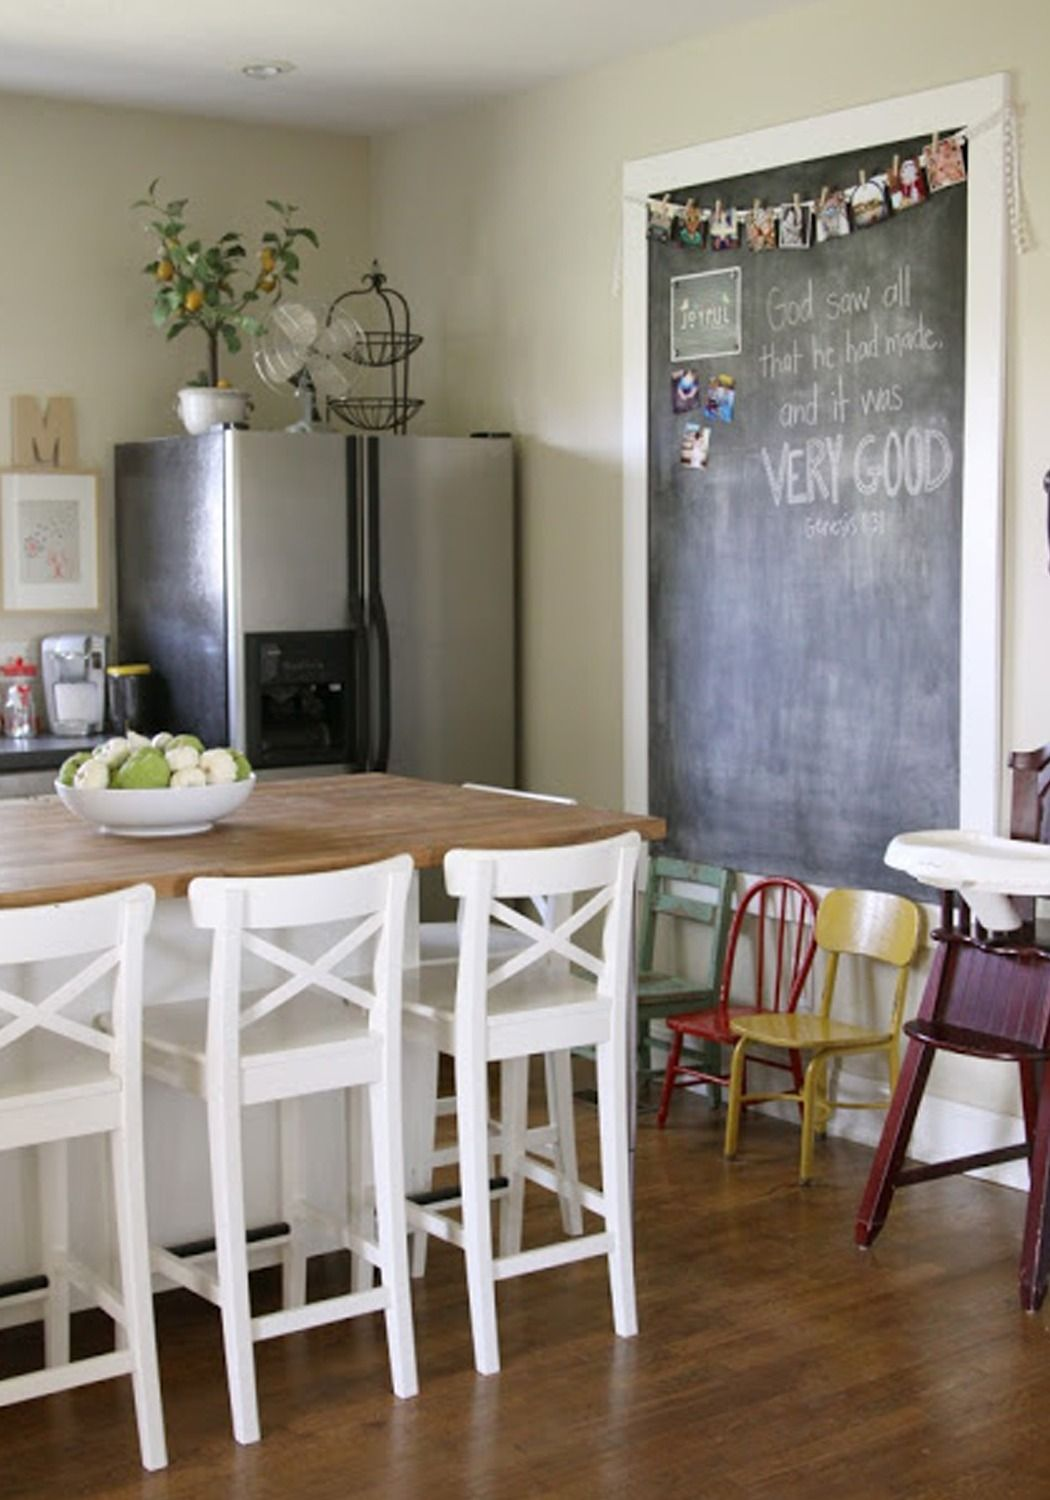 How To Make A Giant Magnetic Chalkboard Comes In Handy The Kitchen For Notes Or Recipes